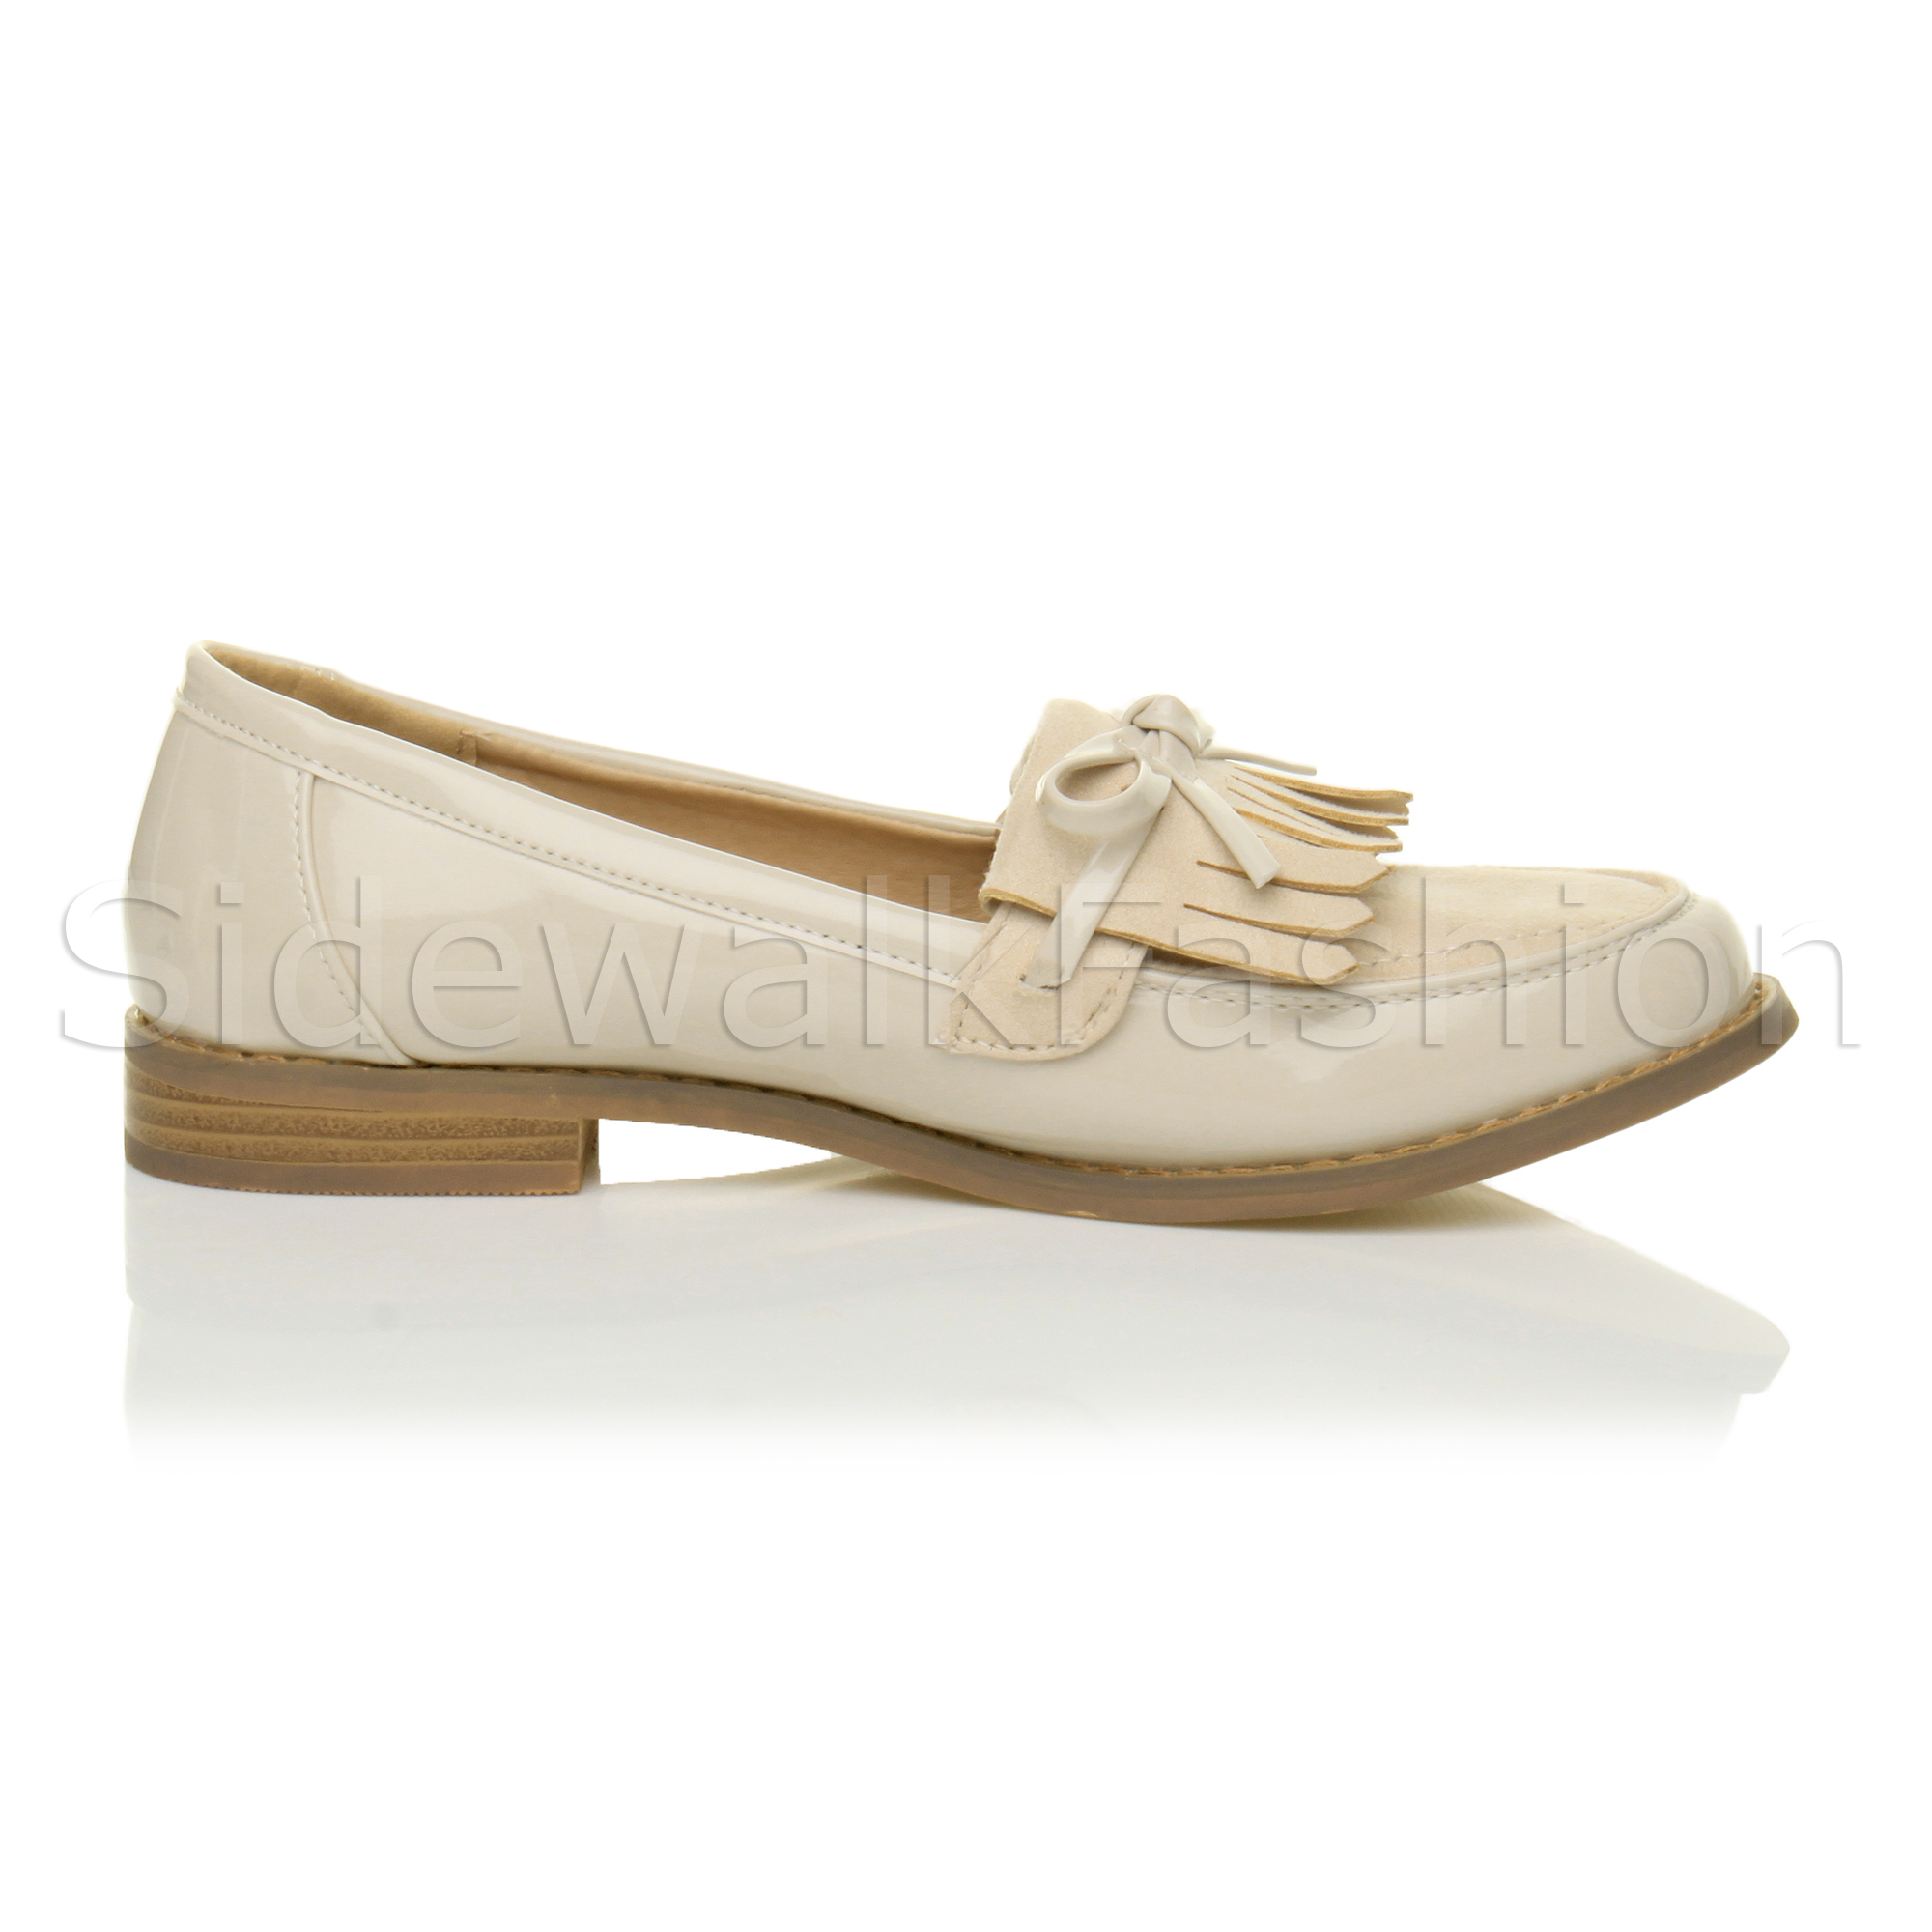 Womens Tassle Boat Shoes